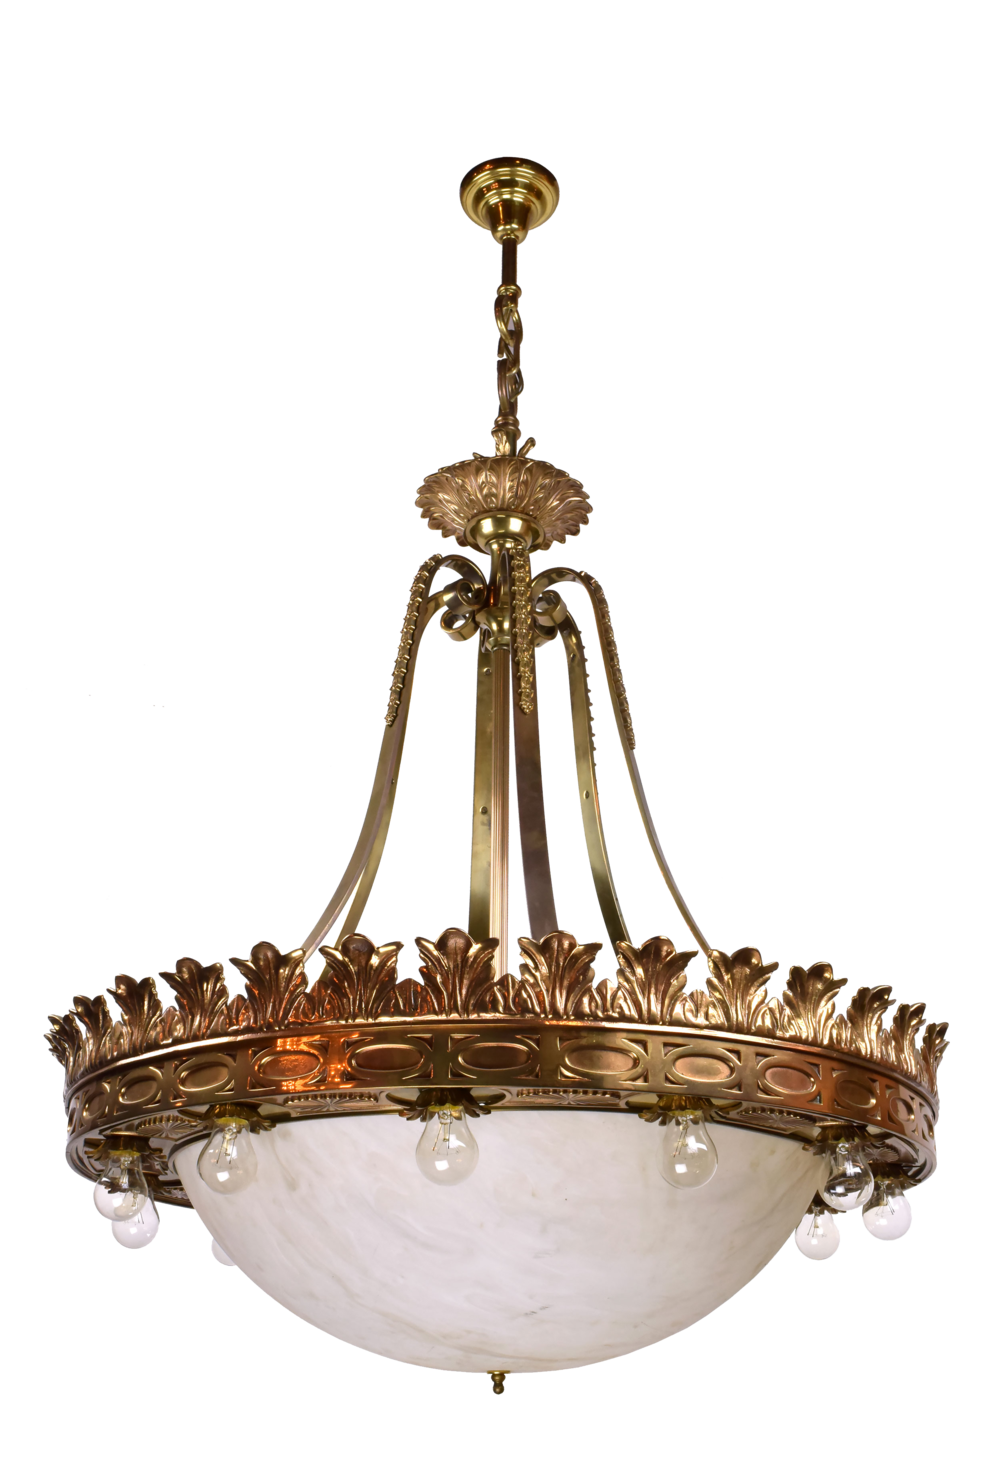 47134-bronze-bowl-chandelier-main-image.png